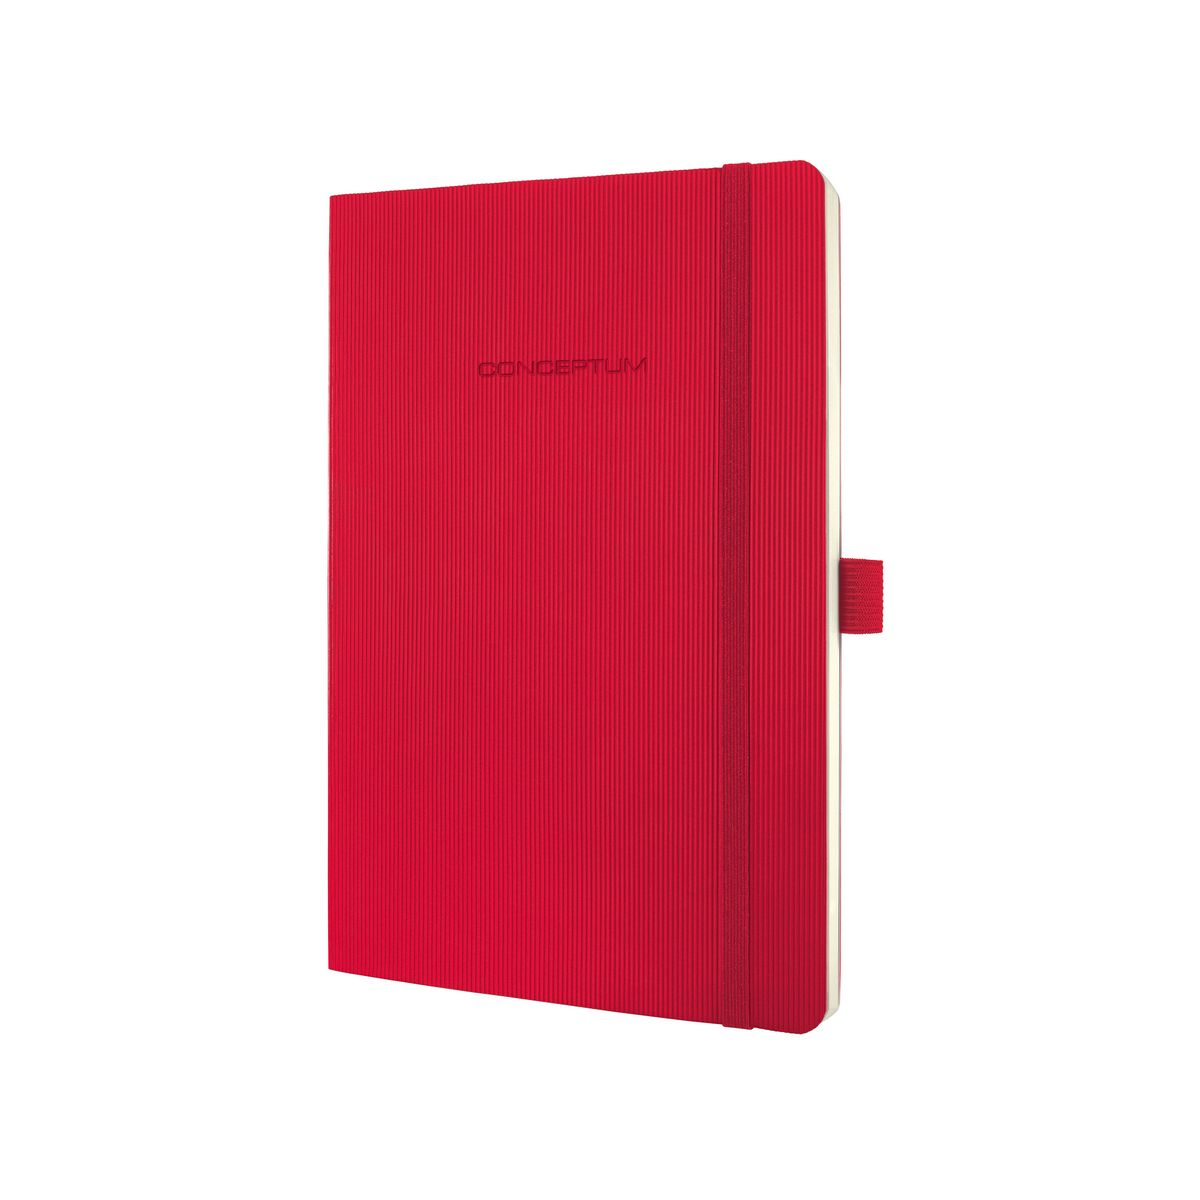 sigel Sigel Conceptum Notebook Softcover Lined 135x210x14mm Red Co325 - AD01